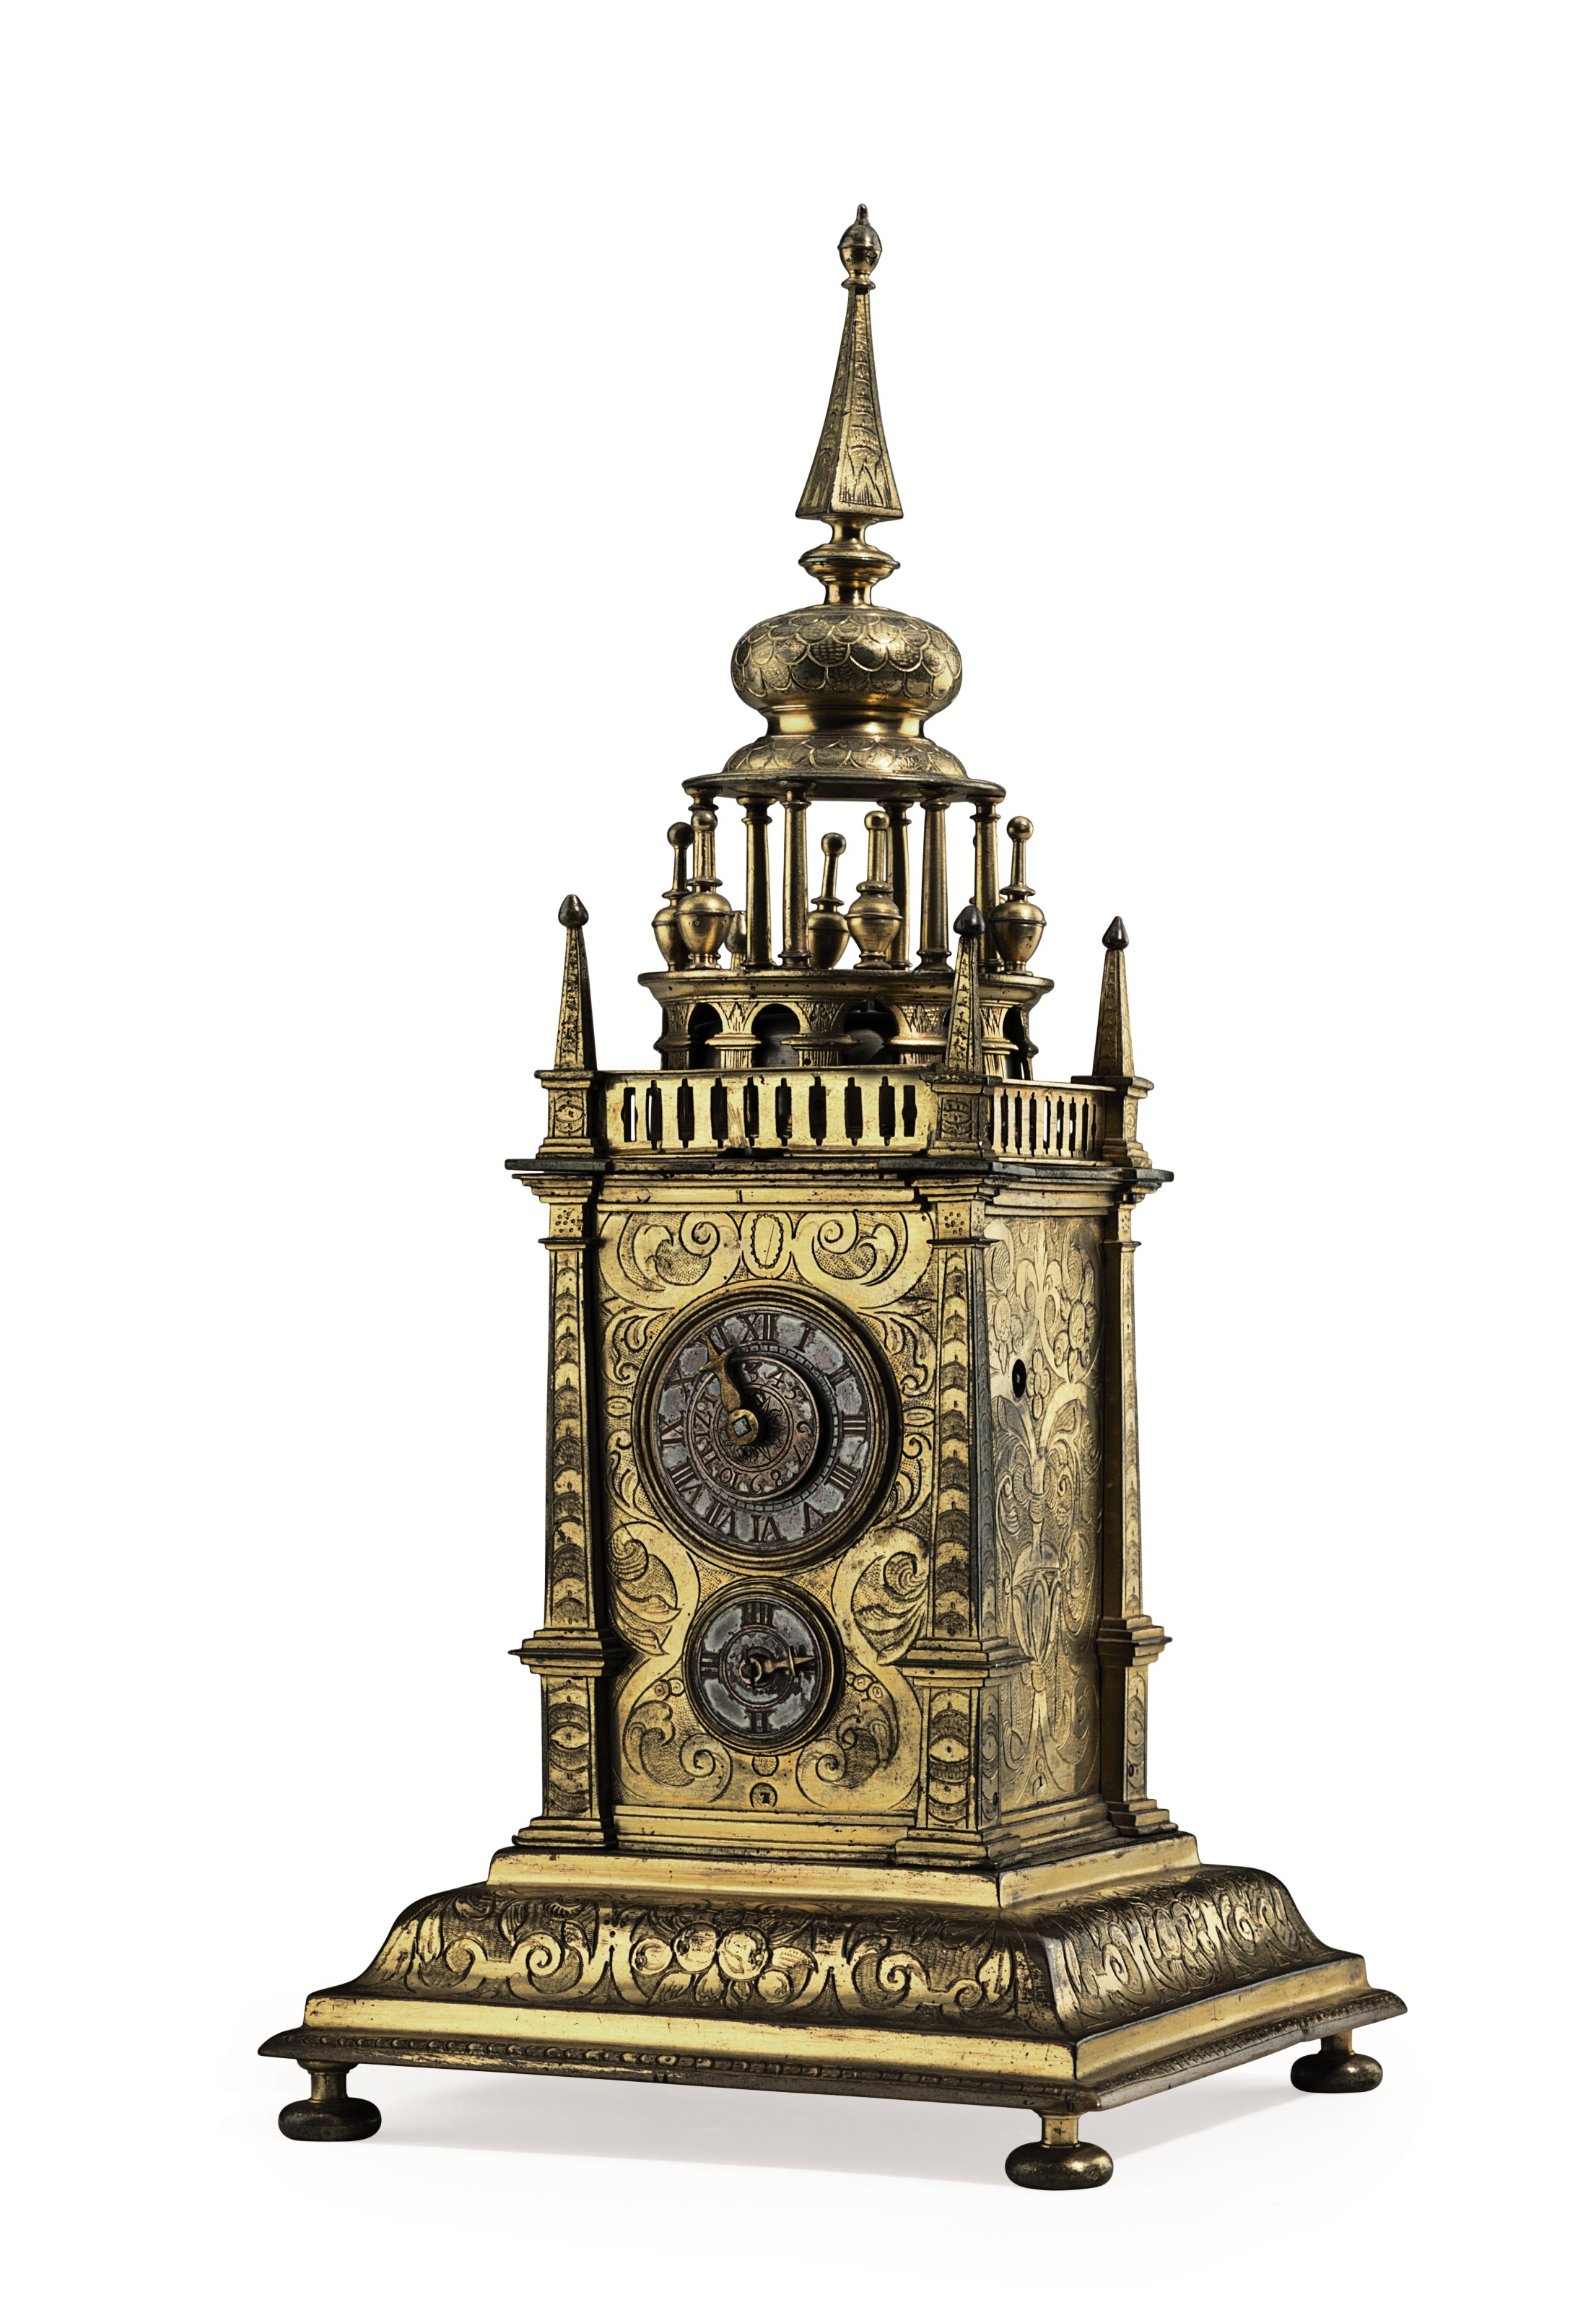 A GERMAN ENGRAVED GILT-BRASS STRIKING AND ALARM TABLE CLOCK WITH ORIGINAL LEATHER TRAVEL CASE